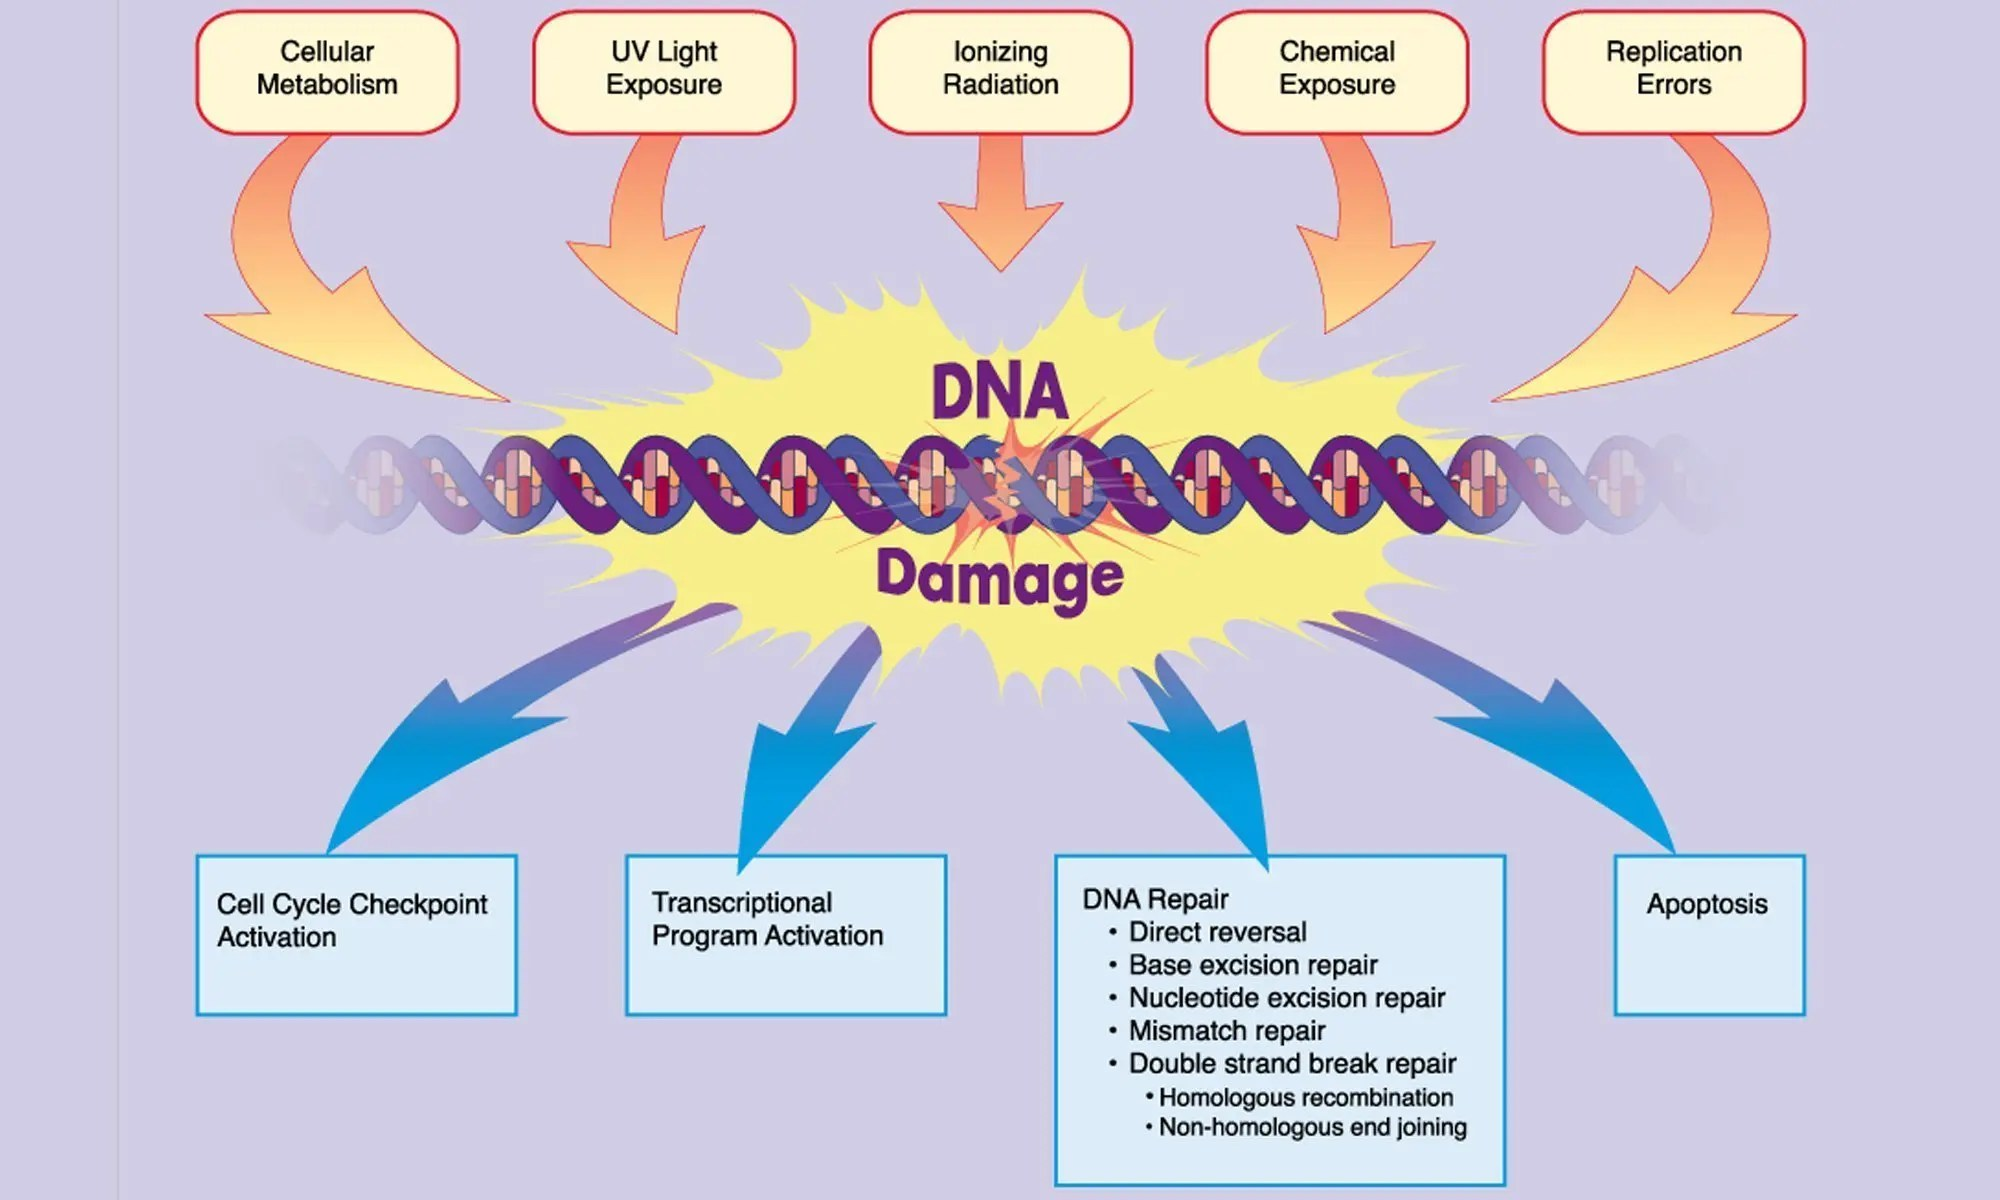 DES compromises the DNA repair system, accumulating lesions in the genome